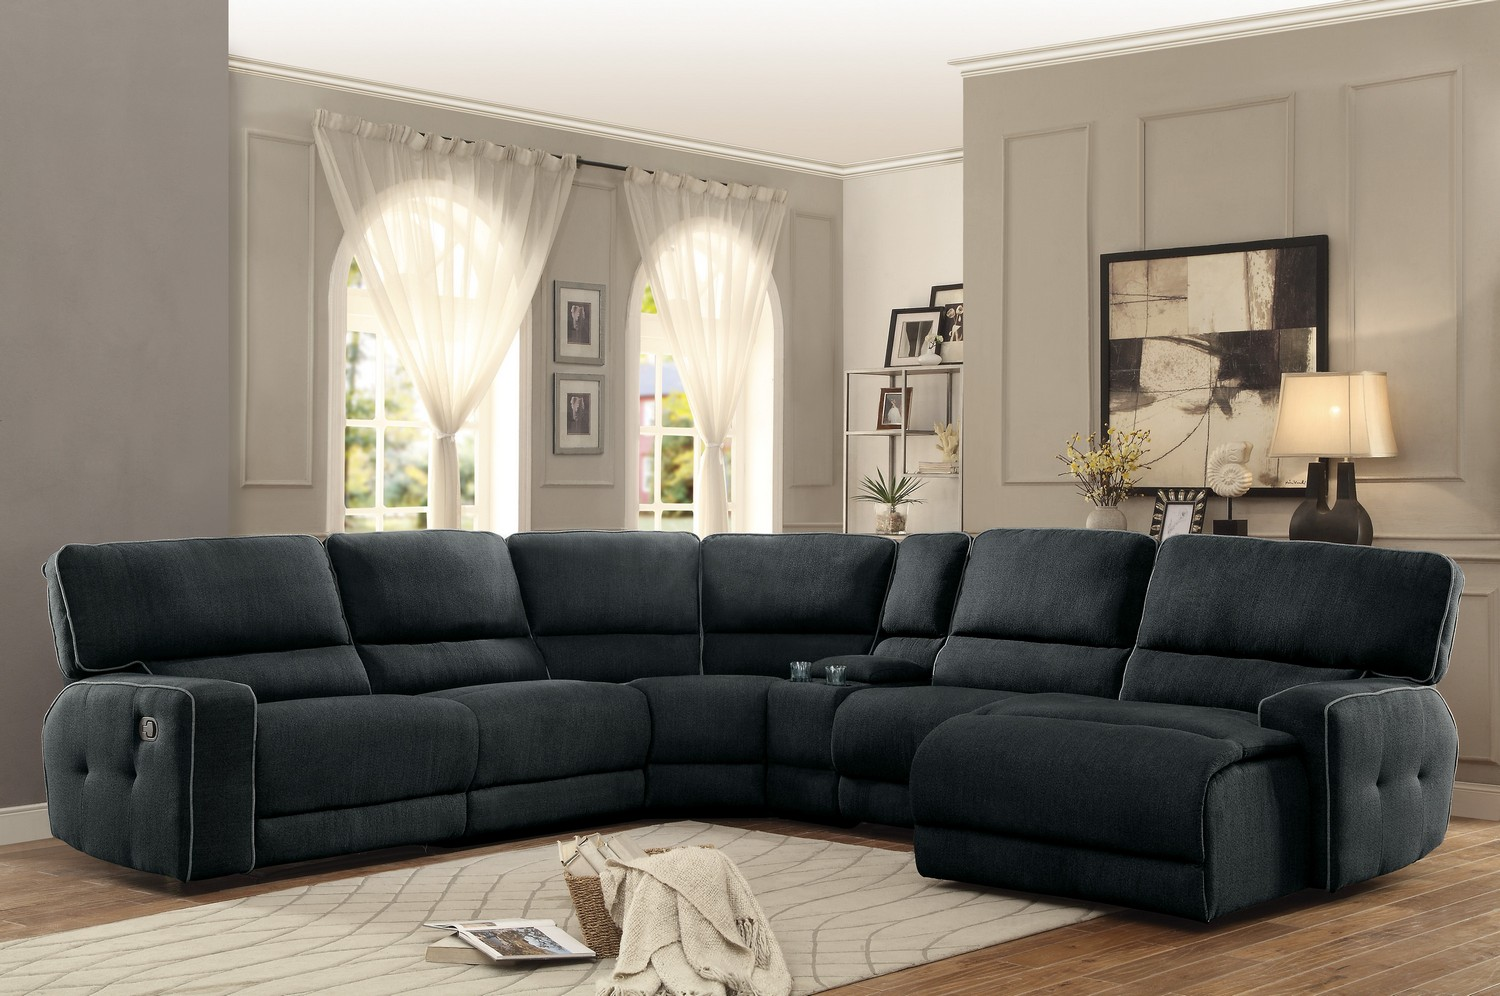 Homelegance Keamey Reclining Sectional Sofa Set A